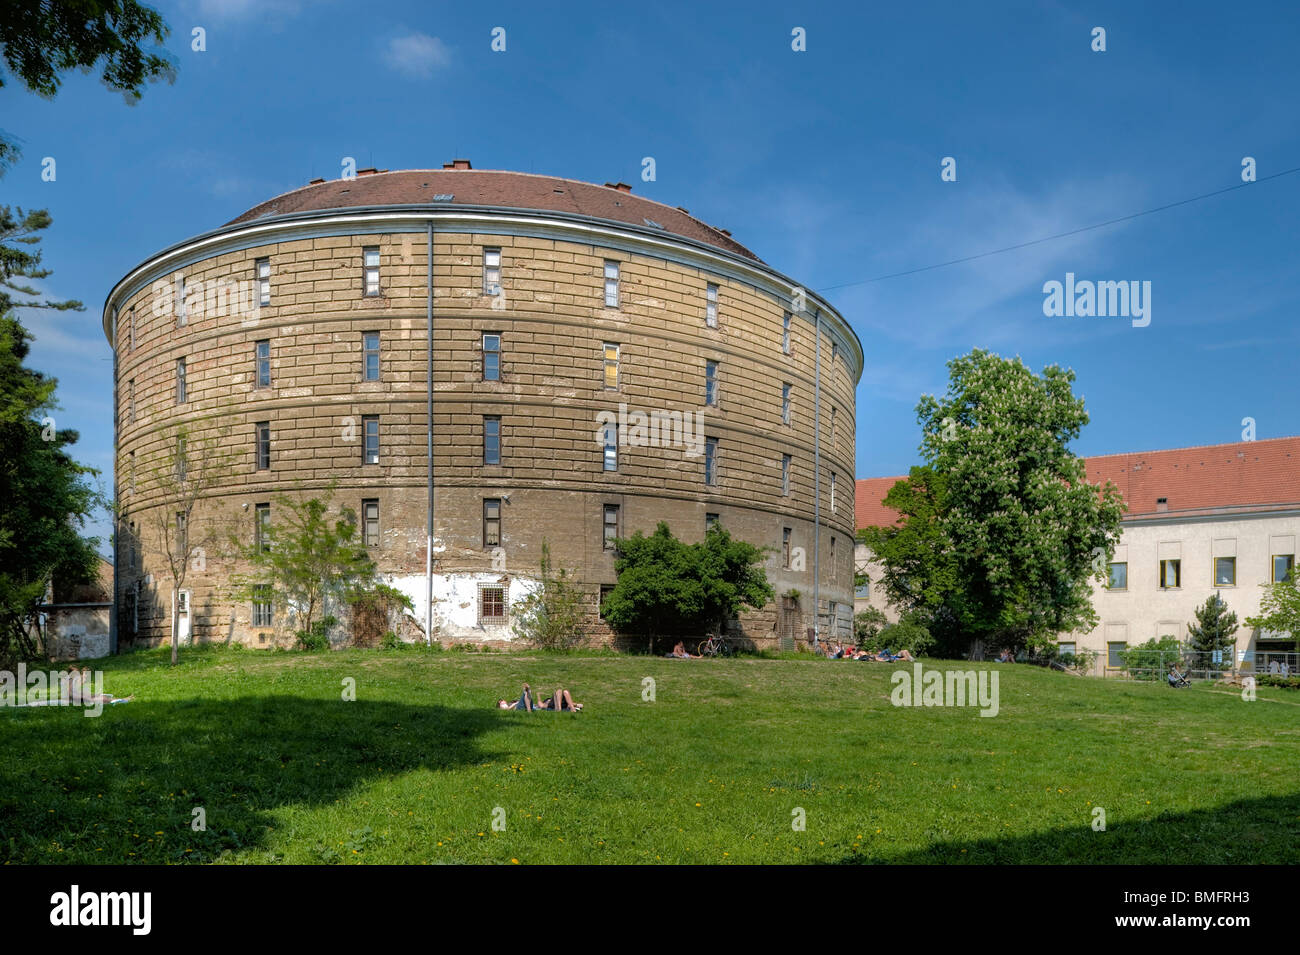 Wien, Narrenturm - Stock Image